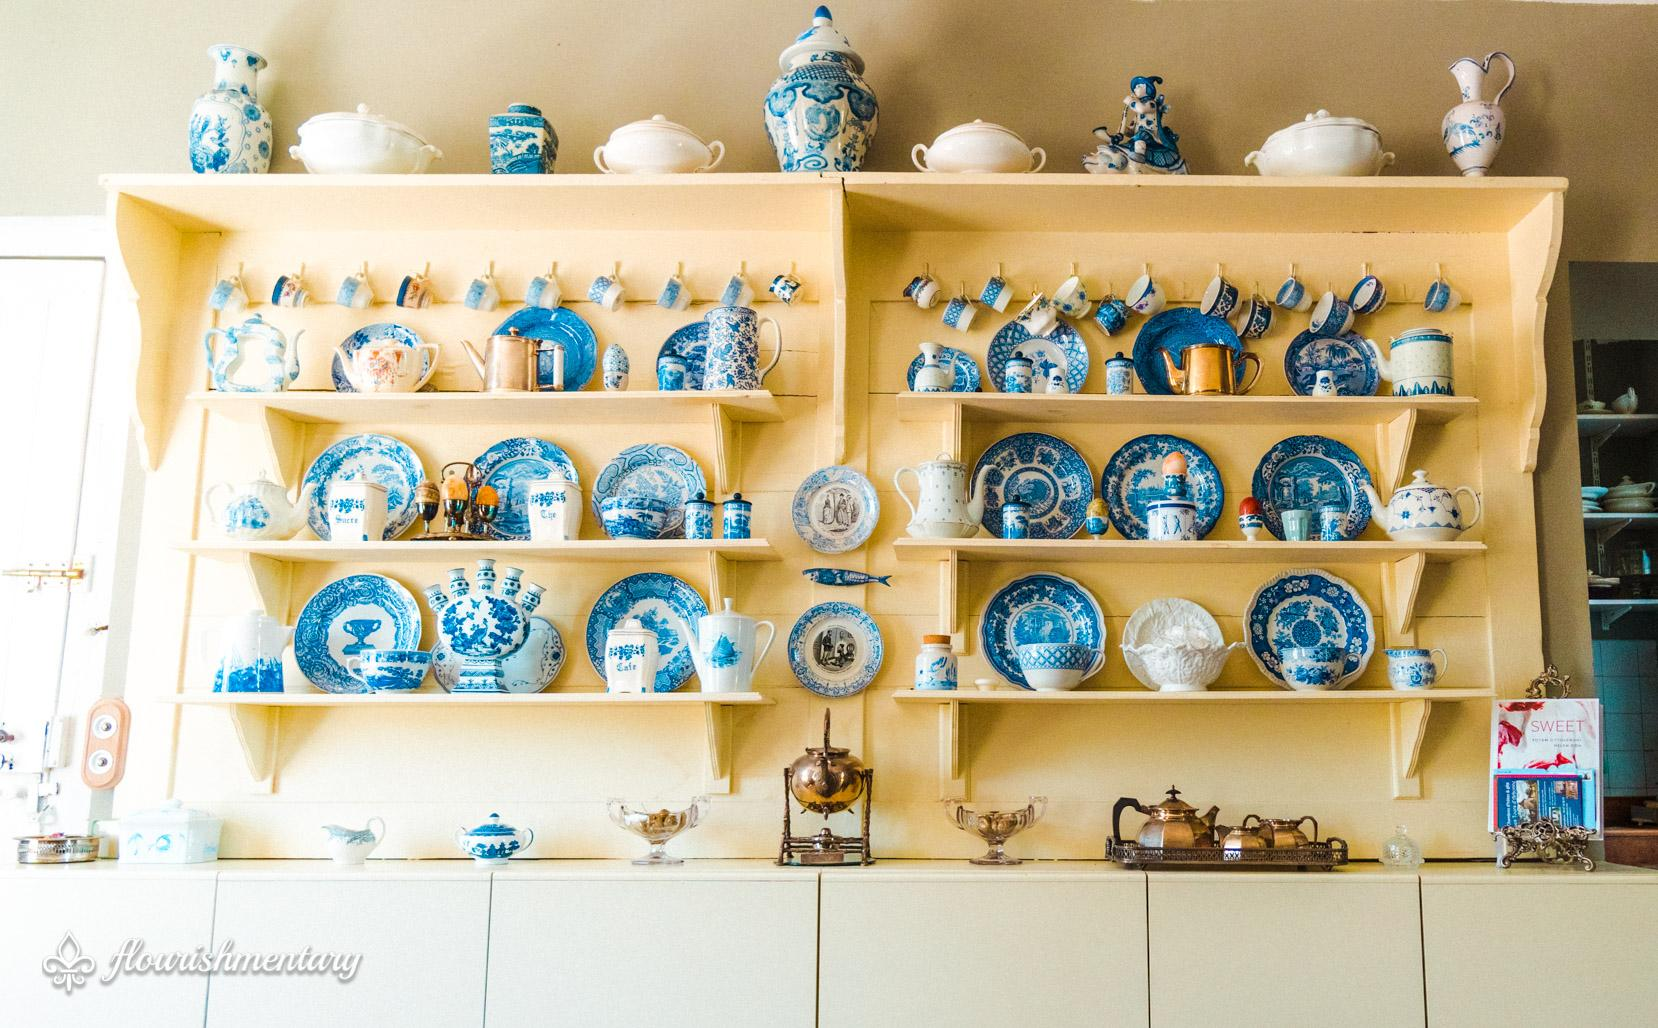 blue and white pottery Restored cabinets with English pottery from Stoke-on-Trent.